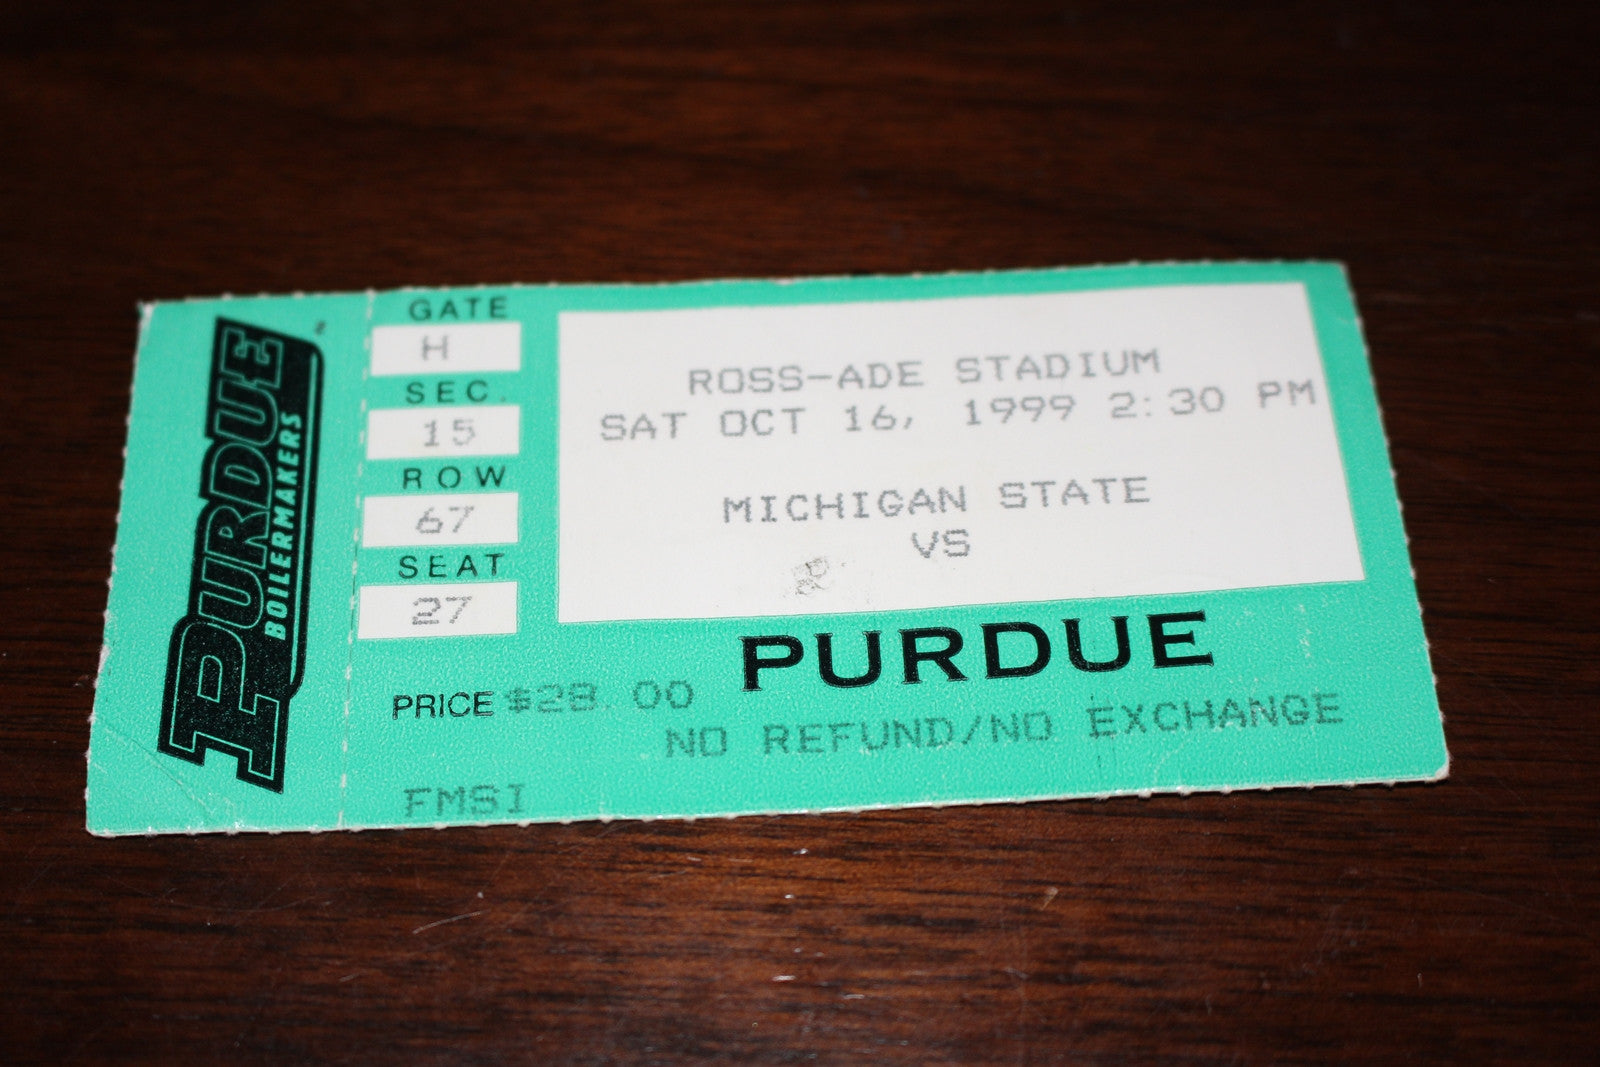 1999 Purdue vs Michigan State Football Ticket Stub - Vintage Indy Sports